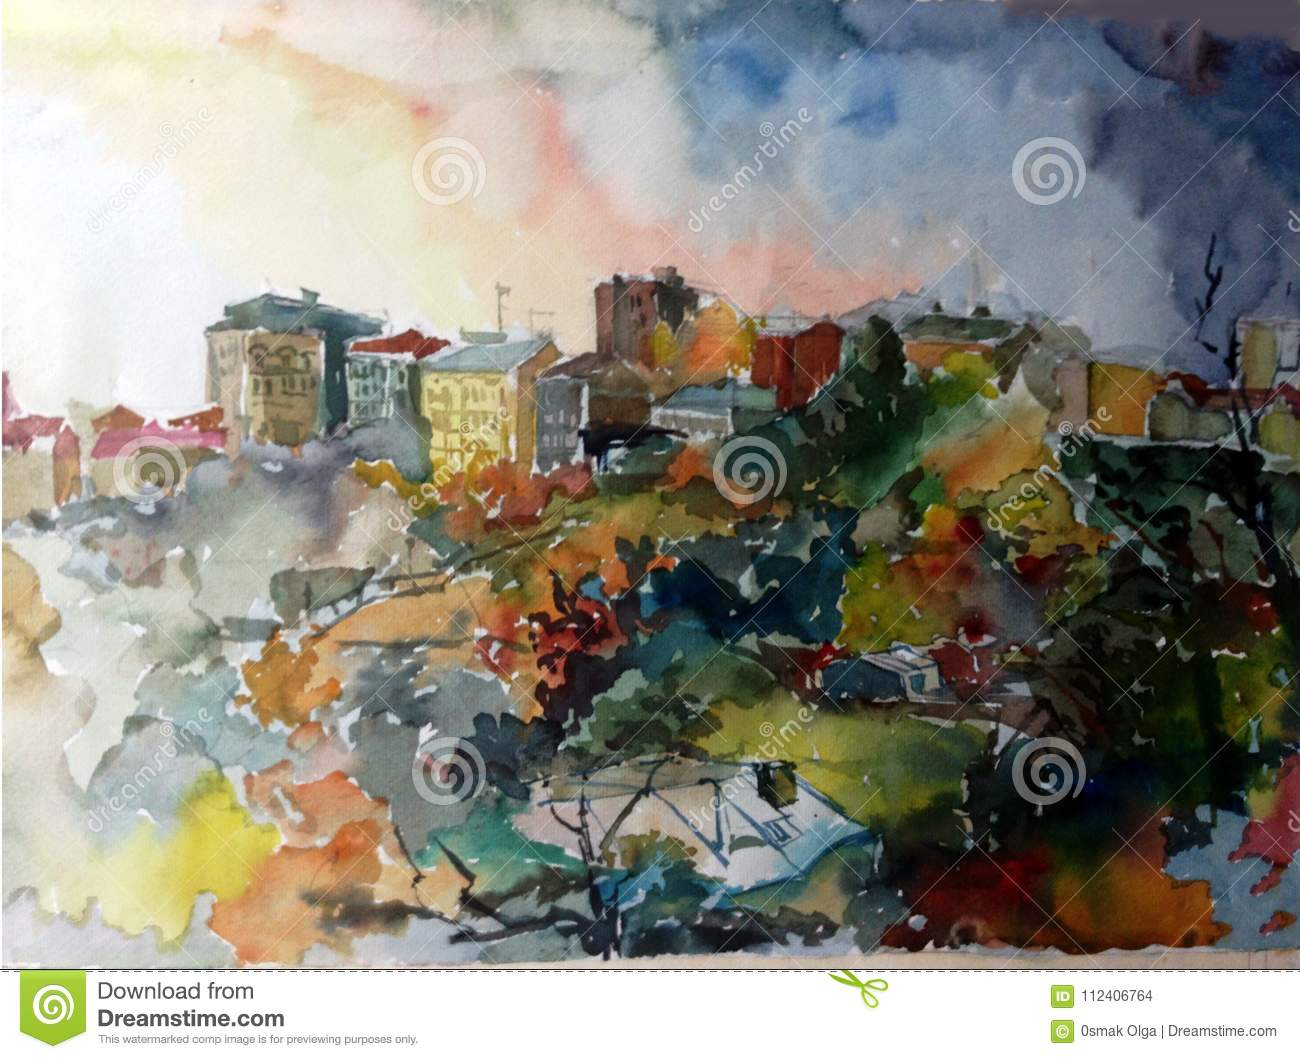 Watercolor art background abstract city architecture house building textured wet wash blurred fantasy